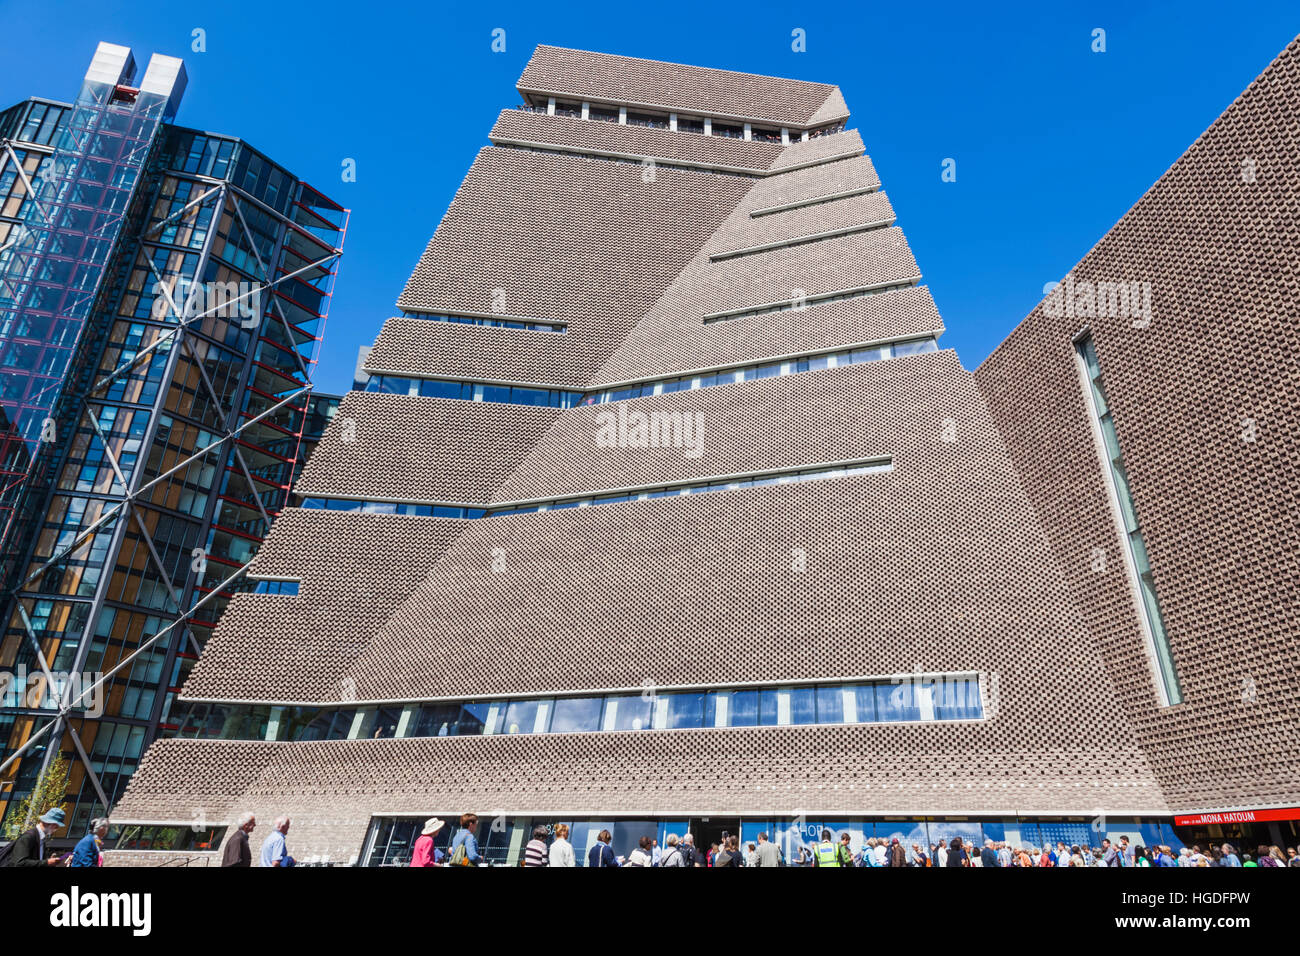 England, London, Tate Modern, The Switch House - Stock Image